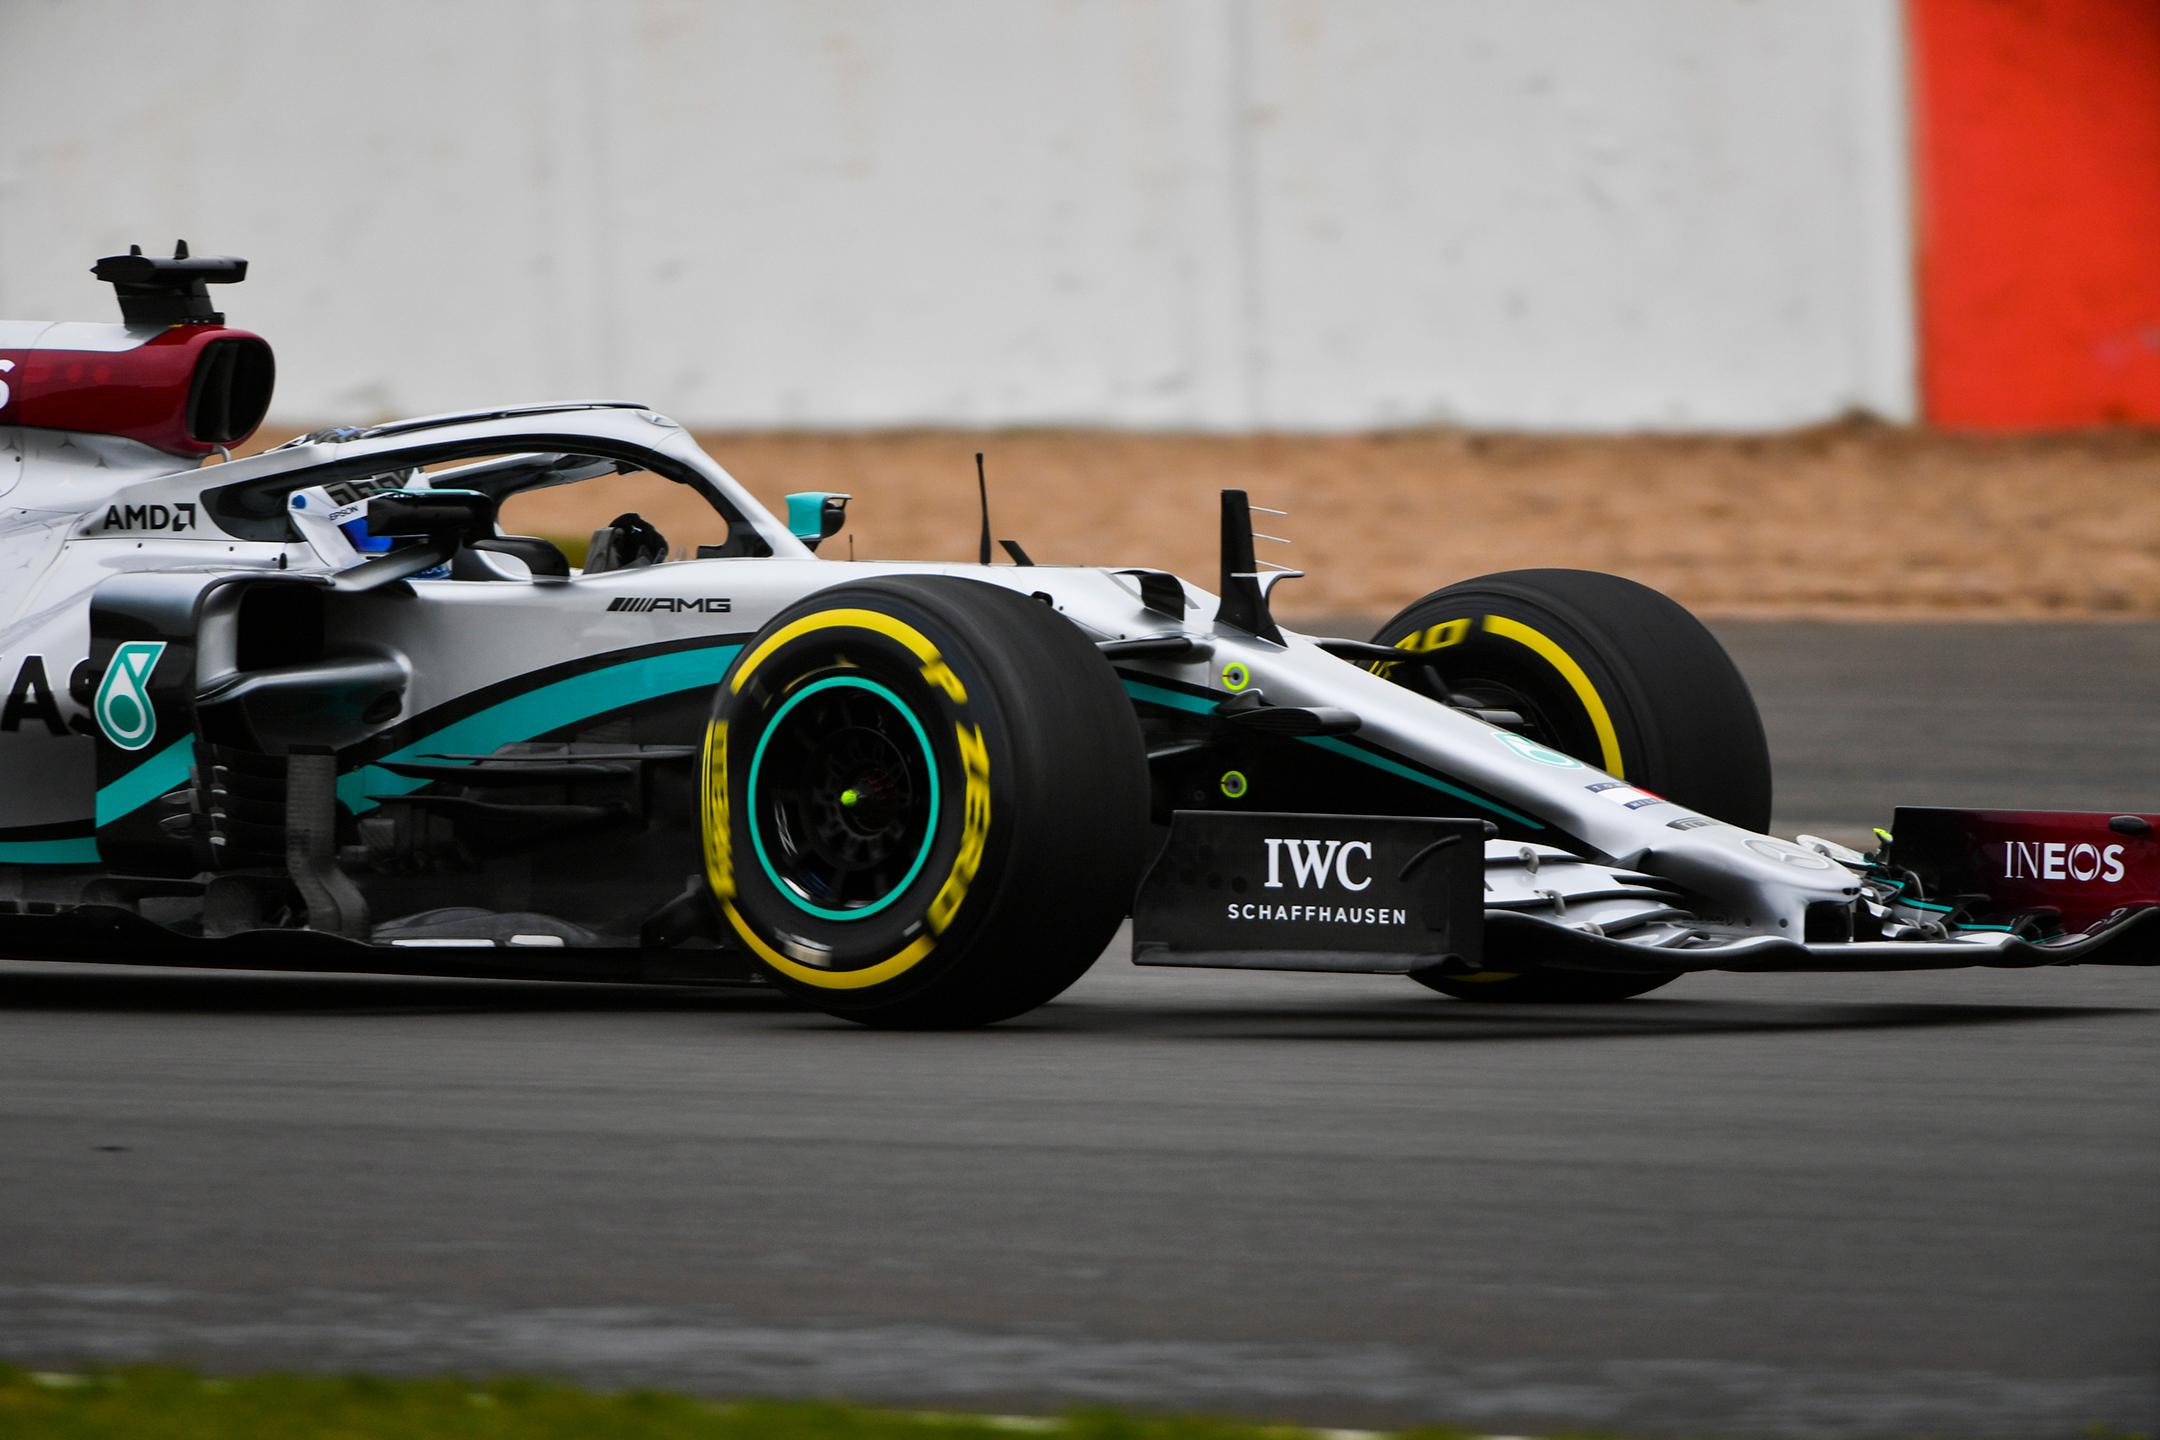 F1 - Mercedes-AMG - W11 - 2020 - front wheel - on track - Silverstone